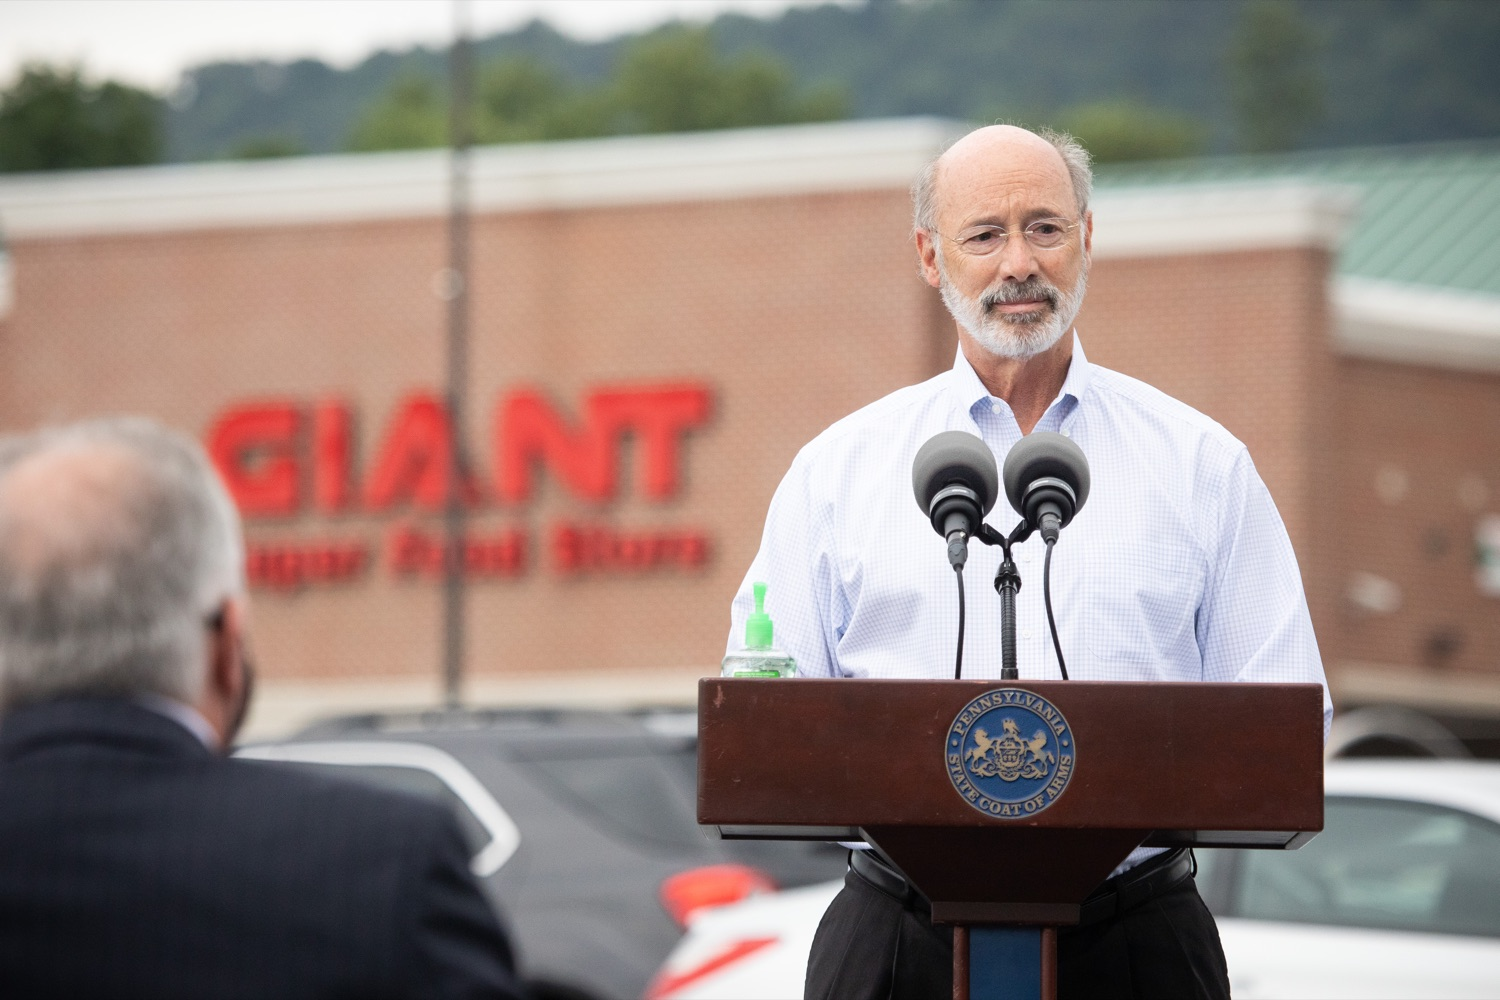 """<a href=""""https://filesource.wostreaming.net/commonwealthofpa/photo/18166_gov_cares_act_dz_05.jpg"""" target=""""_blank"""">⇣Download Photo<br></a>Pennsylvania Governor Tom Wolf speaking to reporters at the announcement. Today, Governor Tom Wolf announced the availability of $50 million in grant funding to help employers provide hazard pay to employees in life-sustaining occupations during the COVID-19 pandemic. Hazard pay is intended to keep front-line employees working in vital industry sectors across Pennsylvania.  Harrisburg, PA  July 16, 2020"""